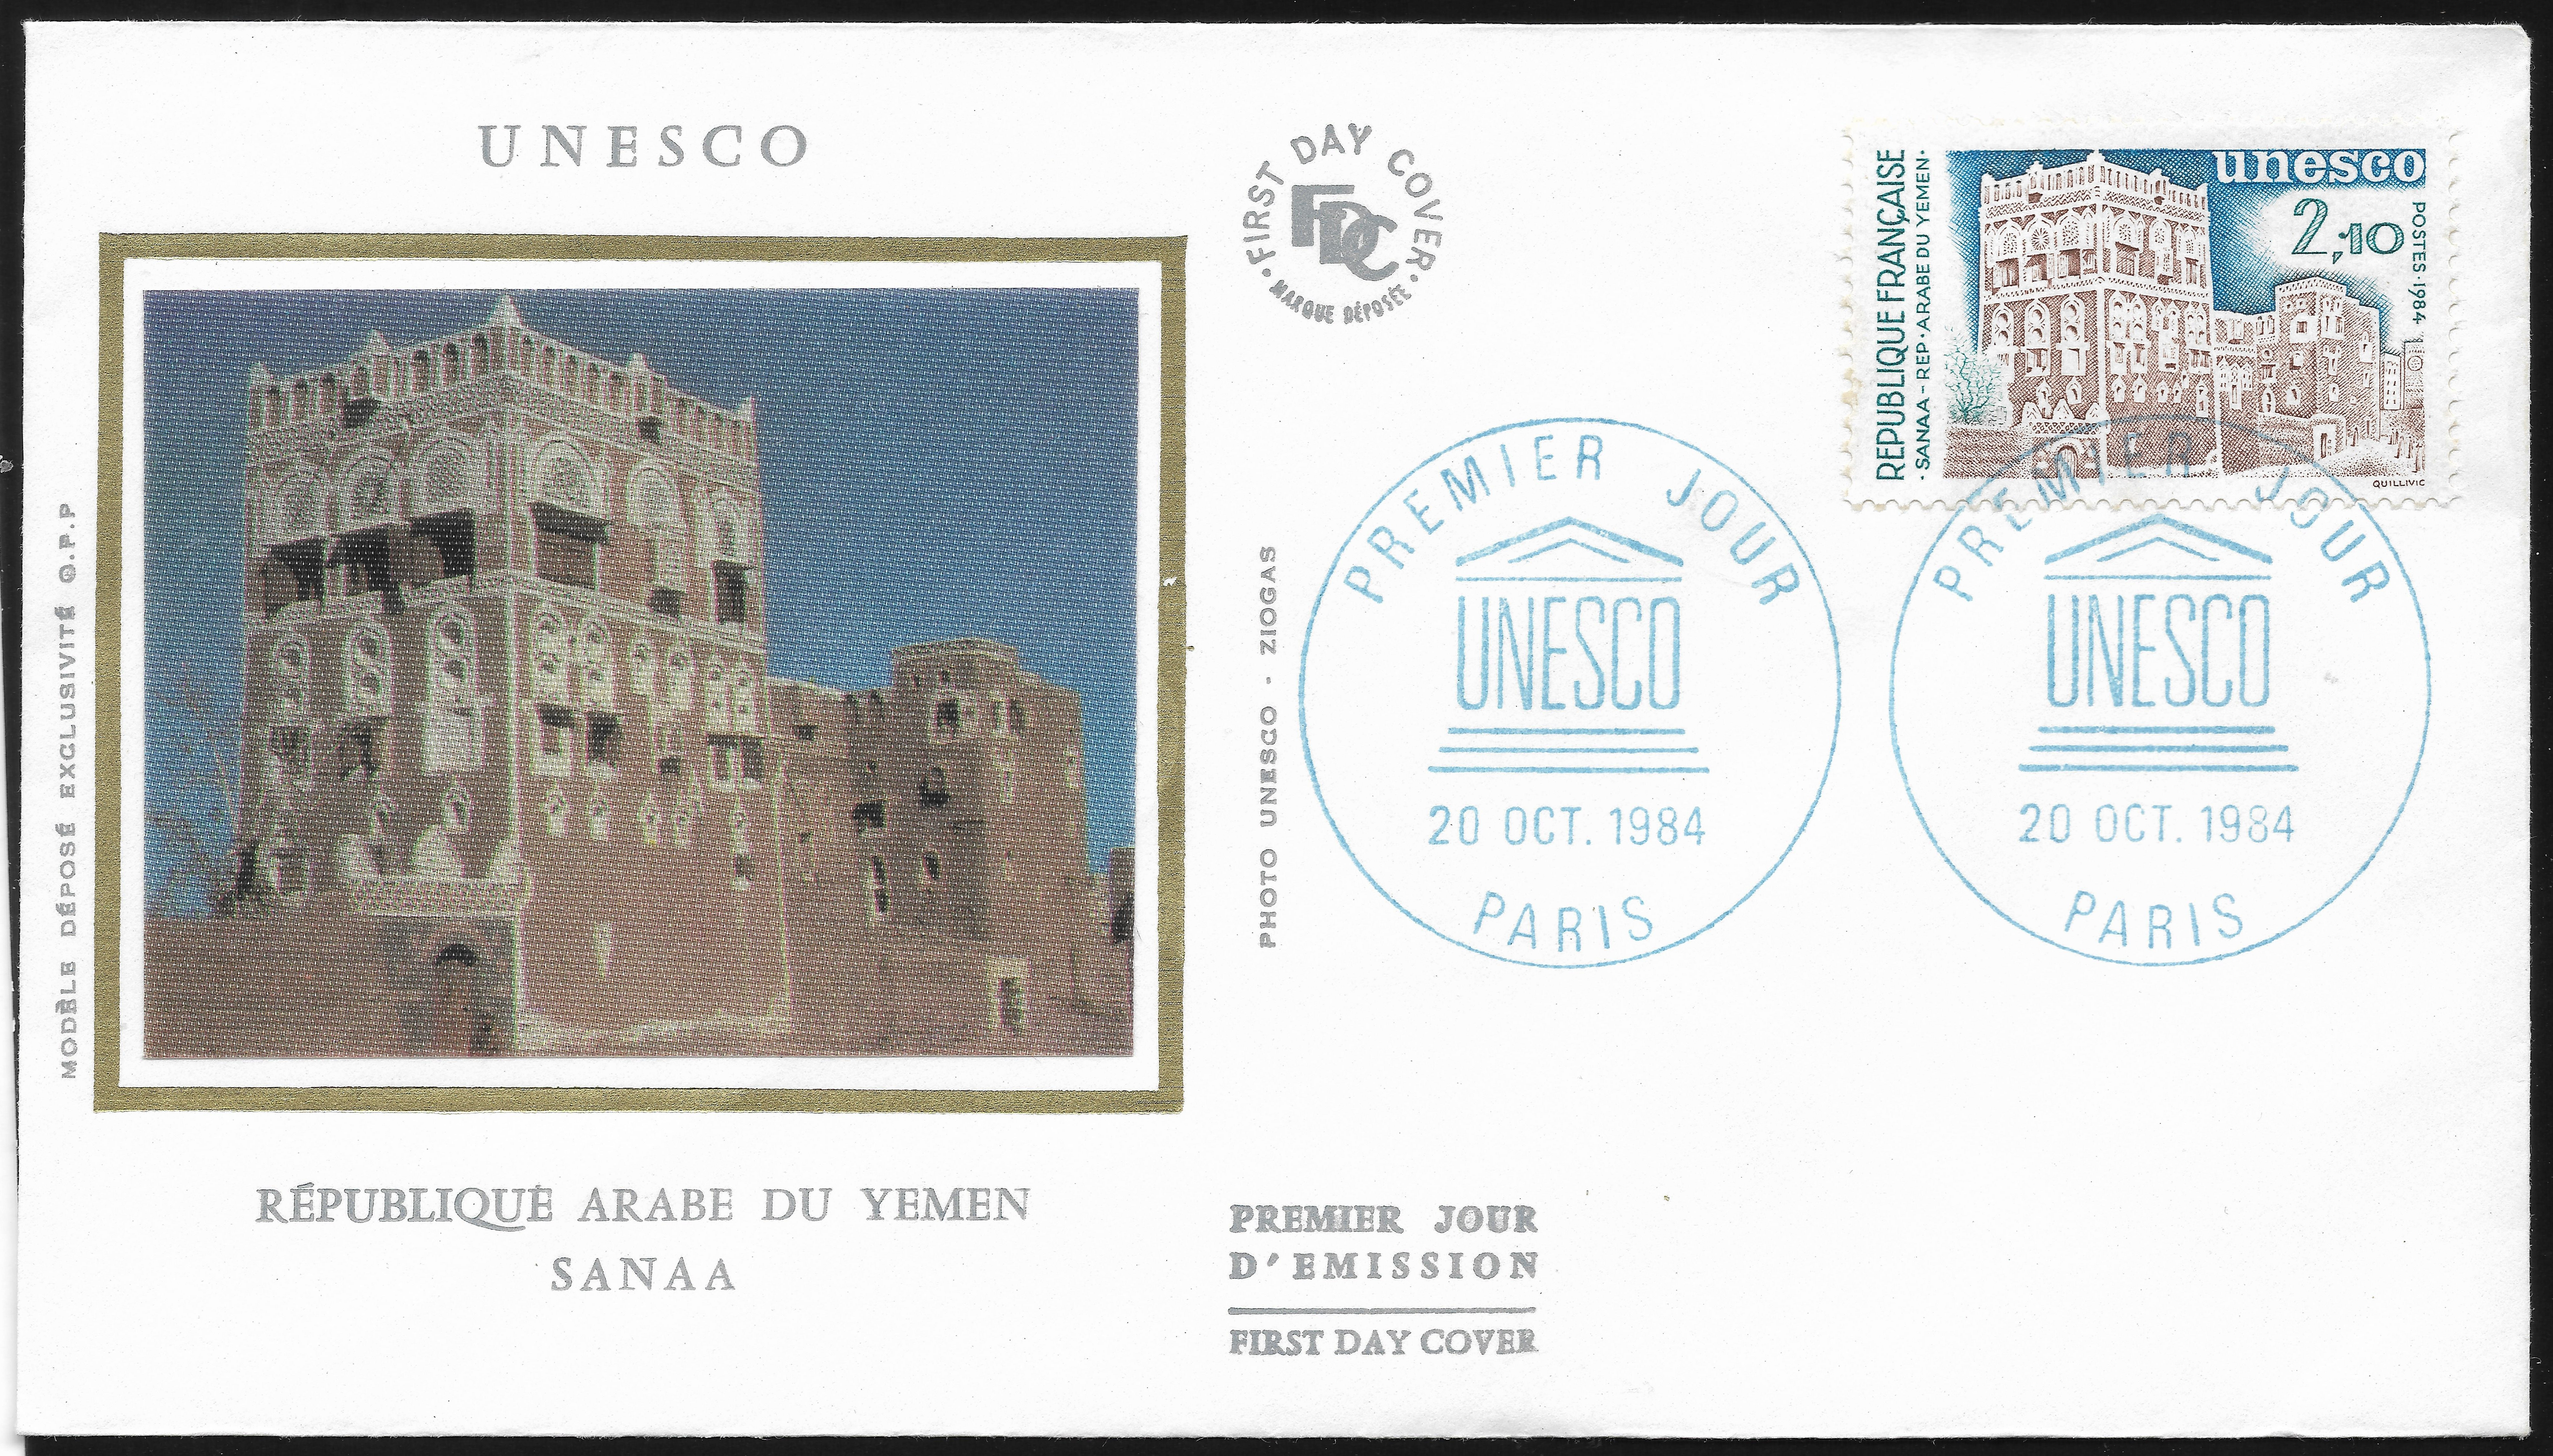 UNESCO (France) - Scott #2O32 (1984) first day cover